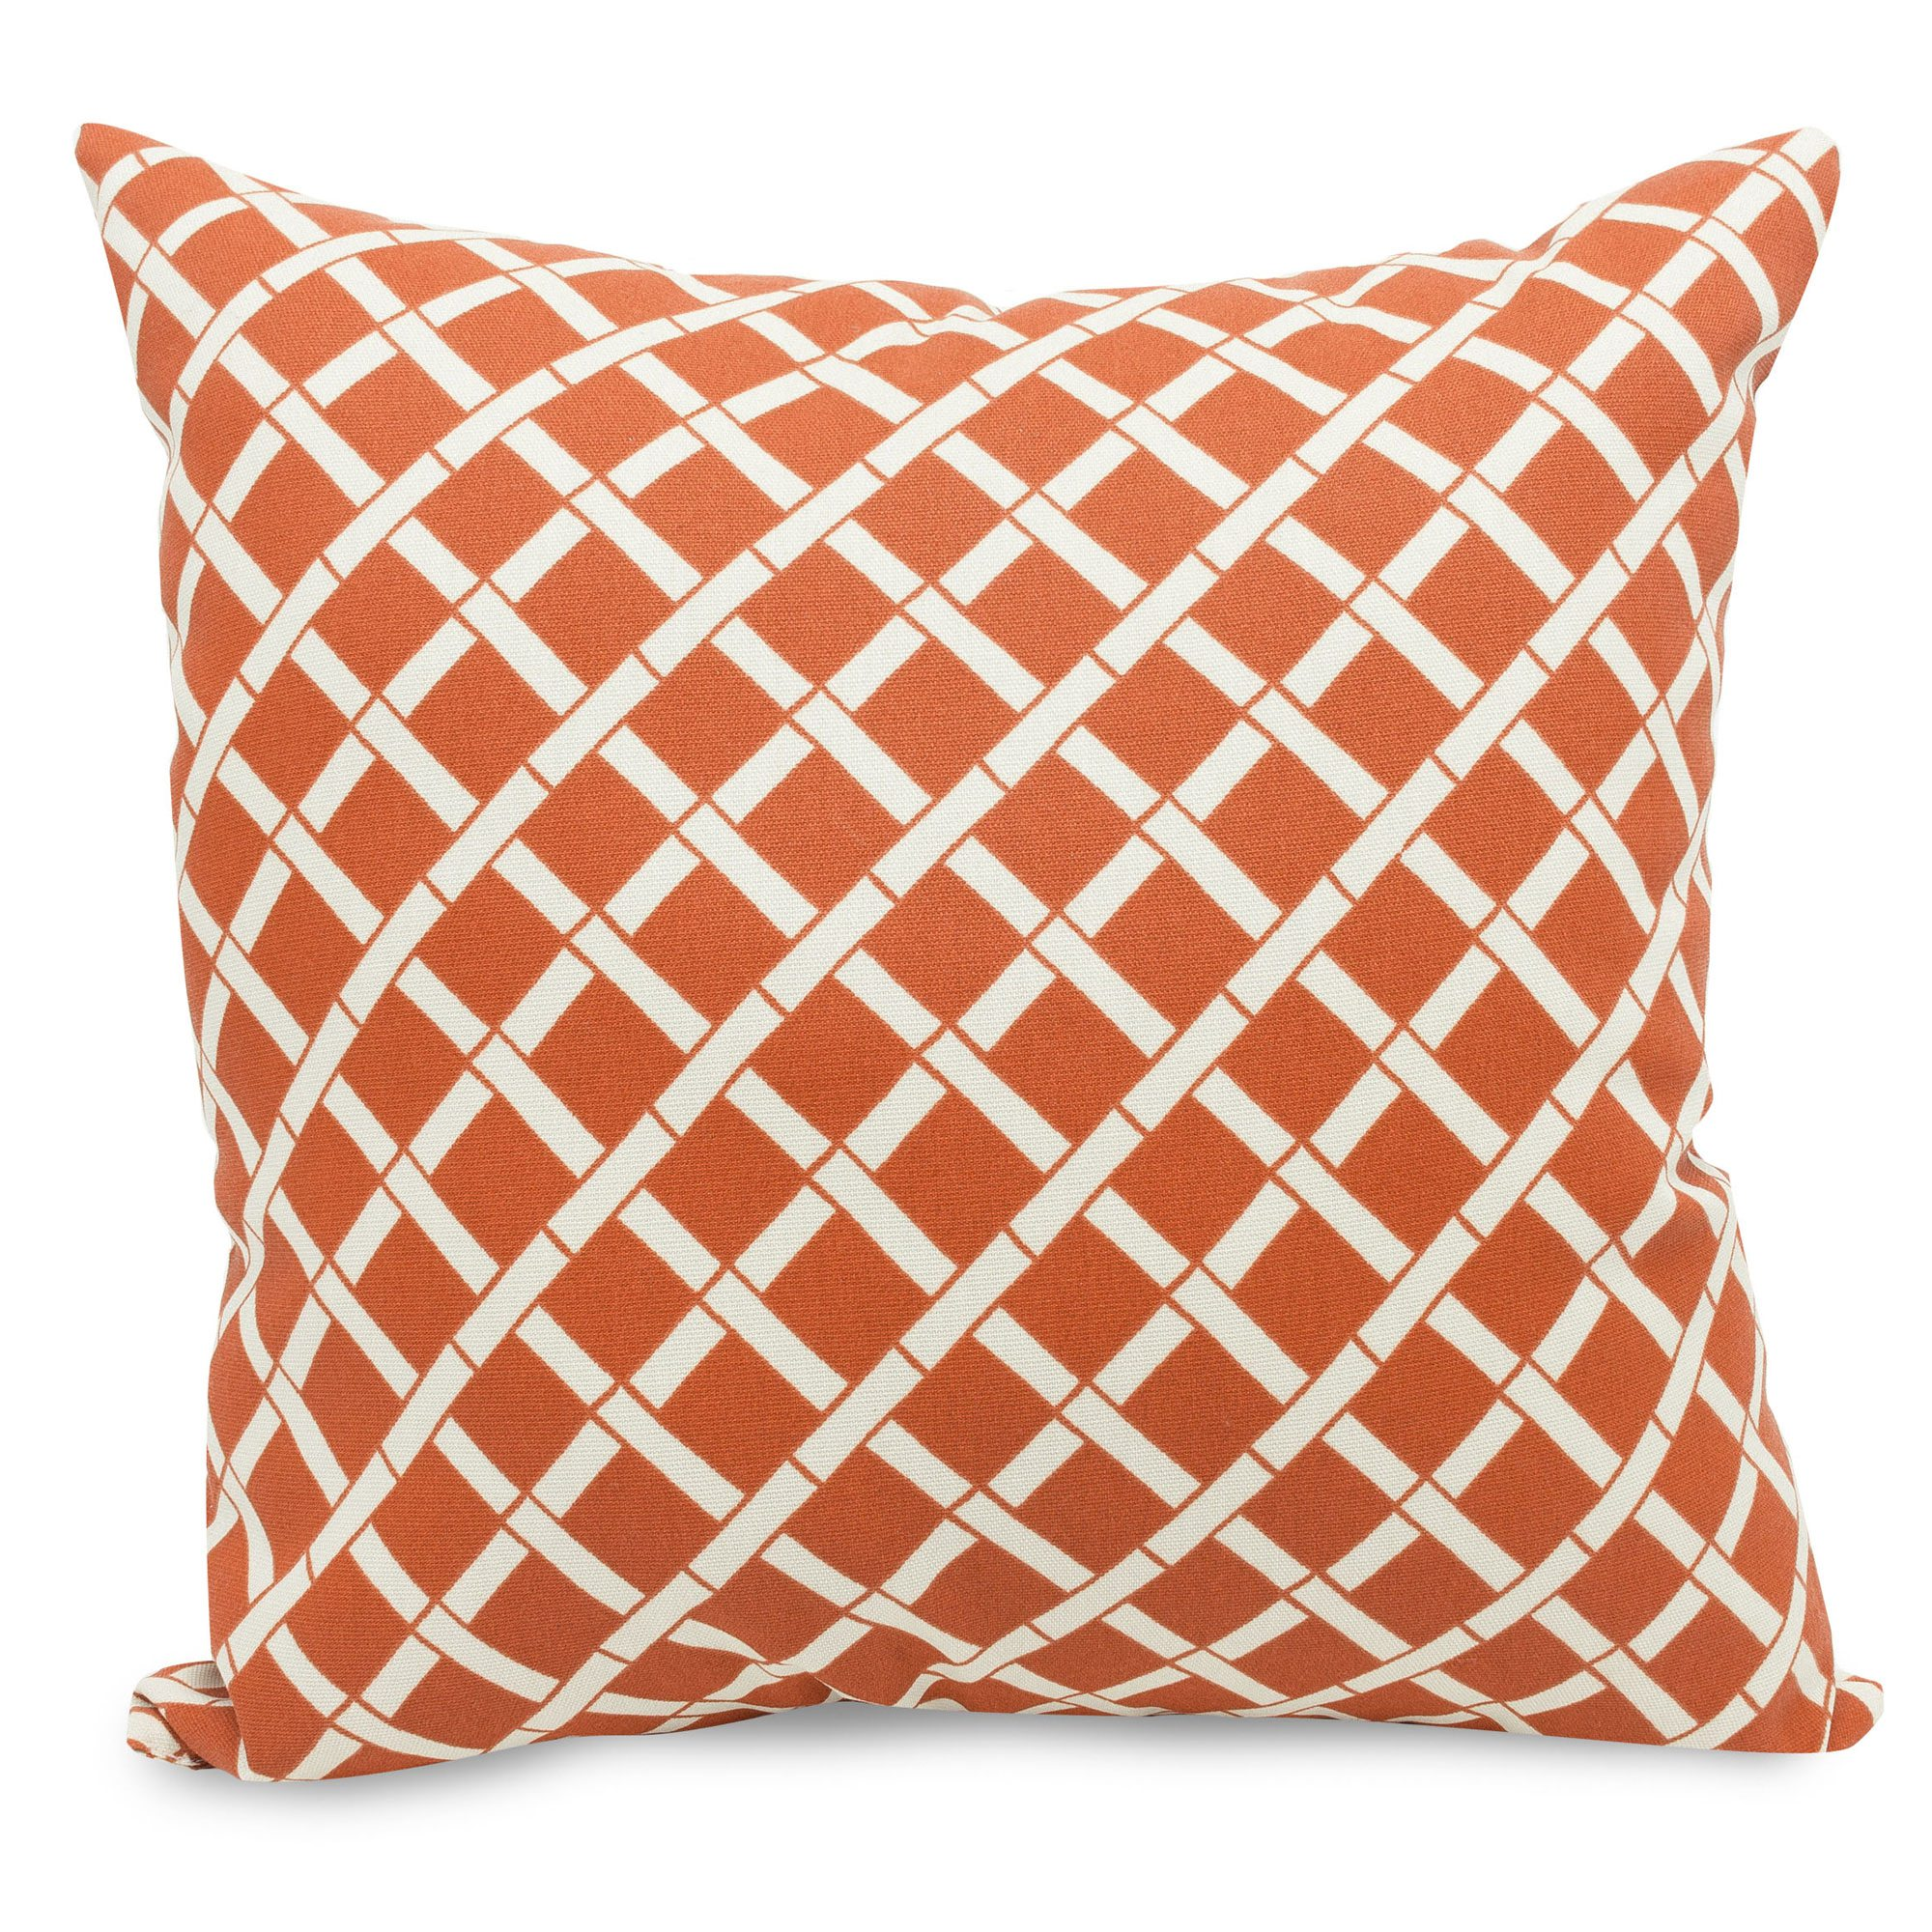 home textures homegoods pillows decorating copper goods adding patterns of the your decor to for pillow pumpkins fall and color